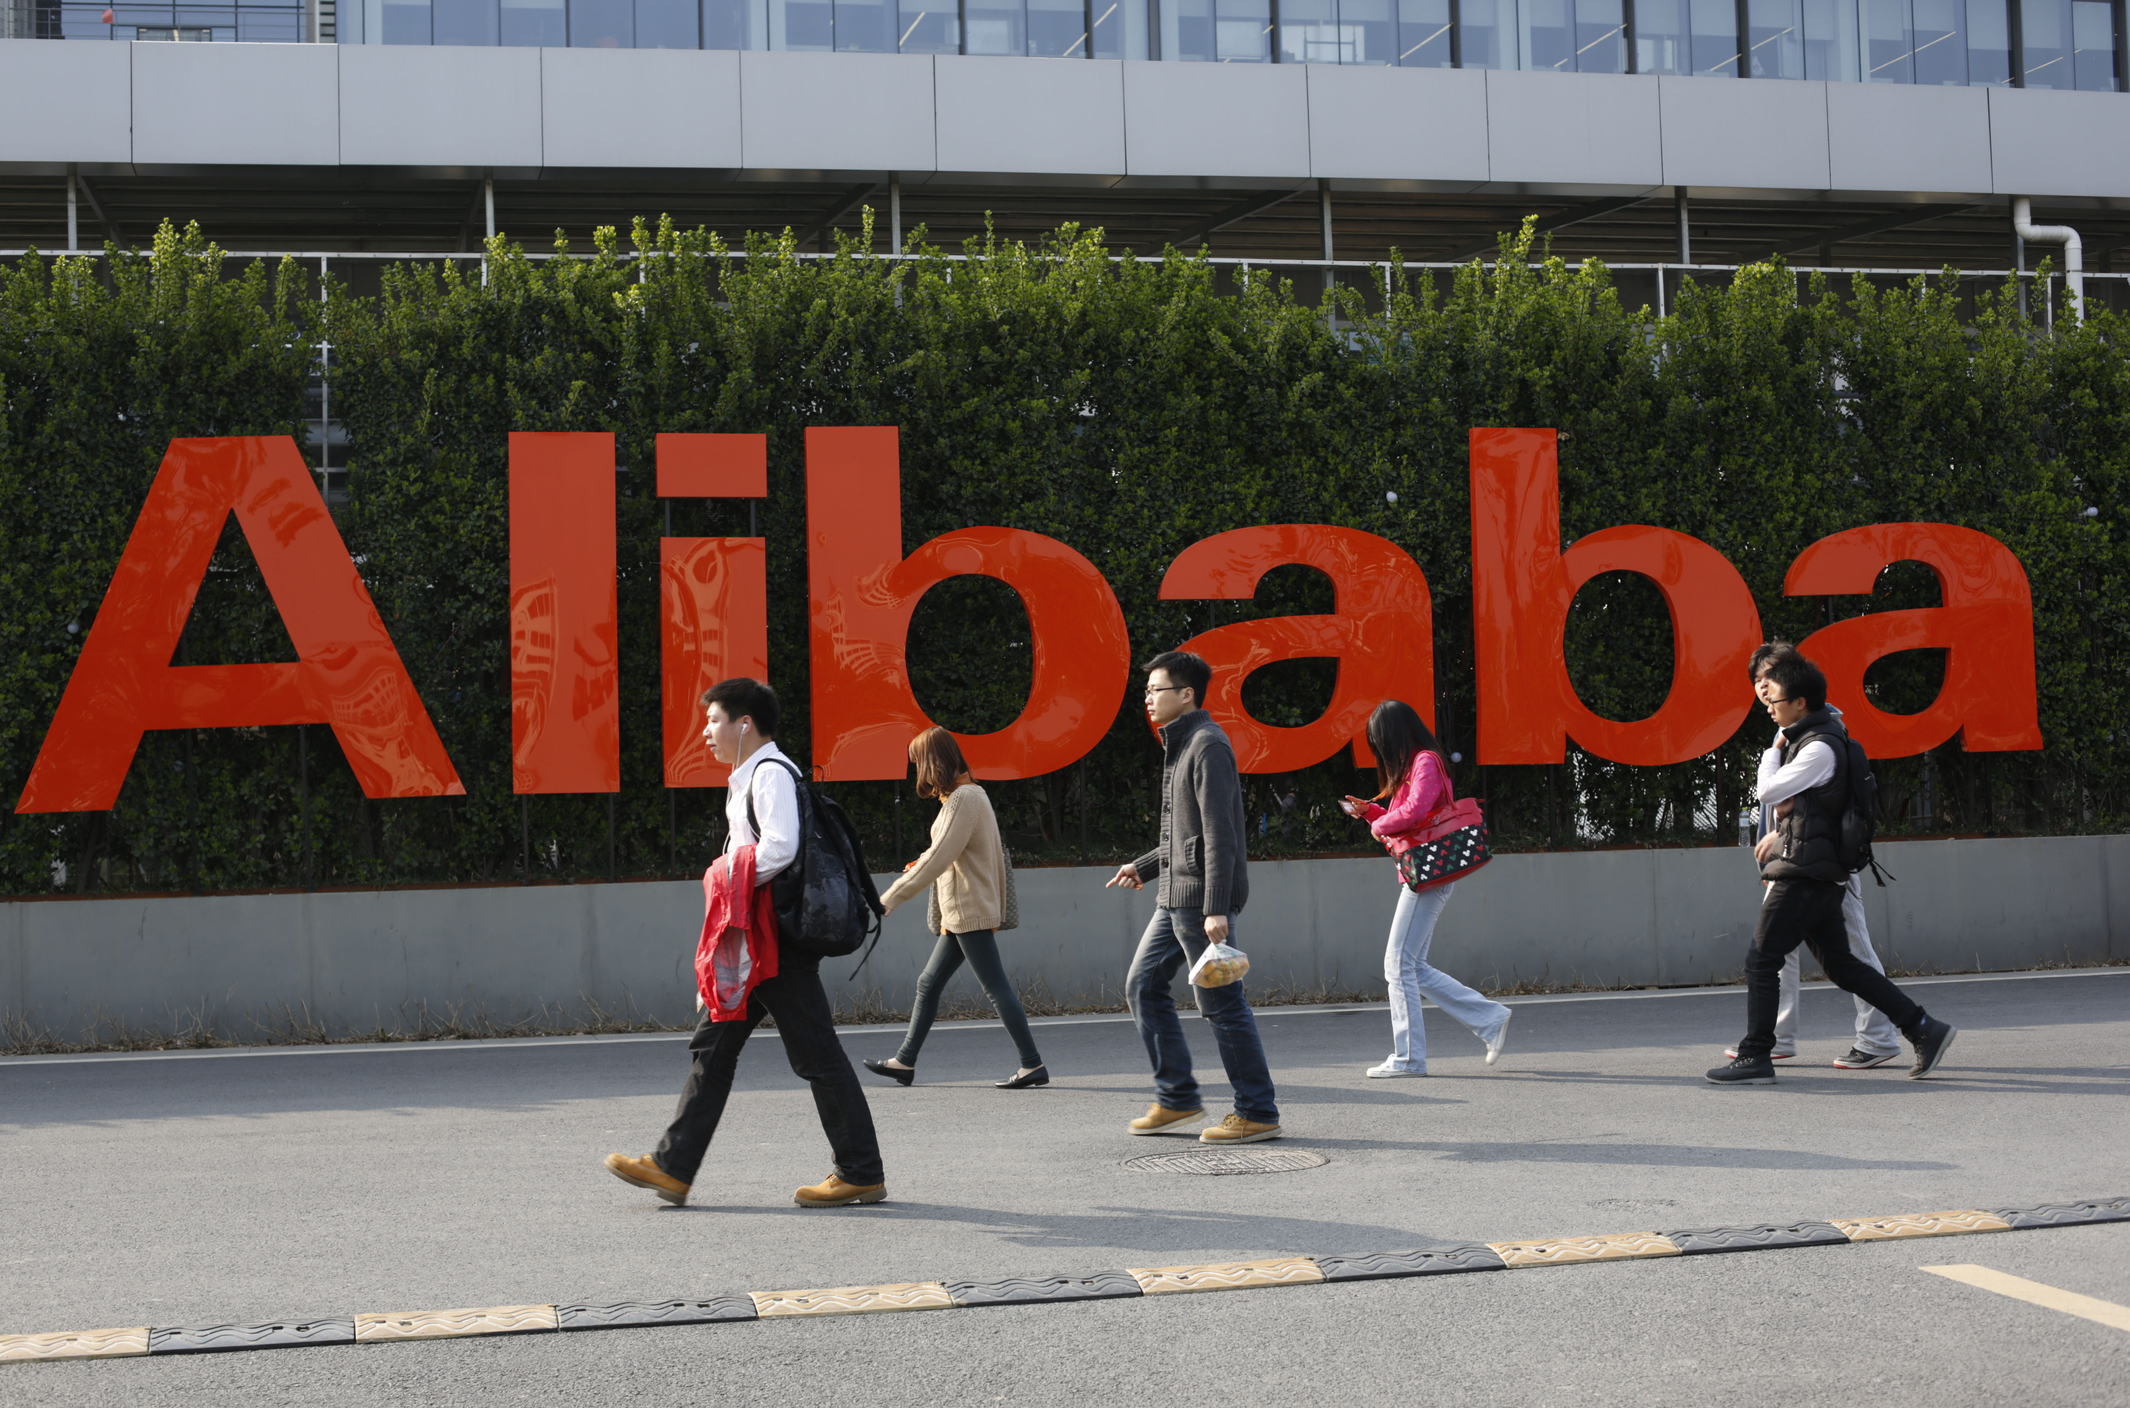 E-commerce giant Alibaba adds WCA network to its list of